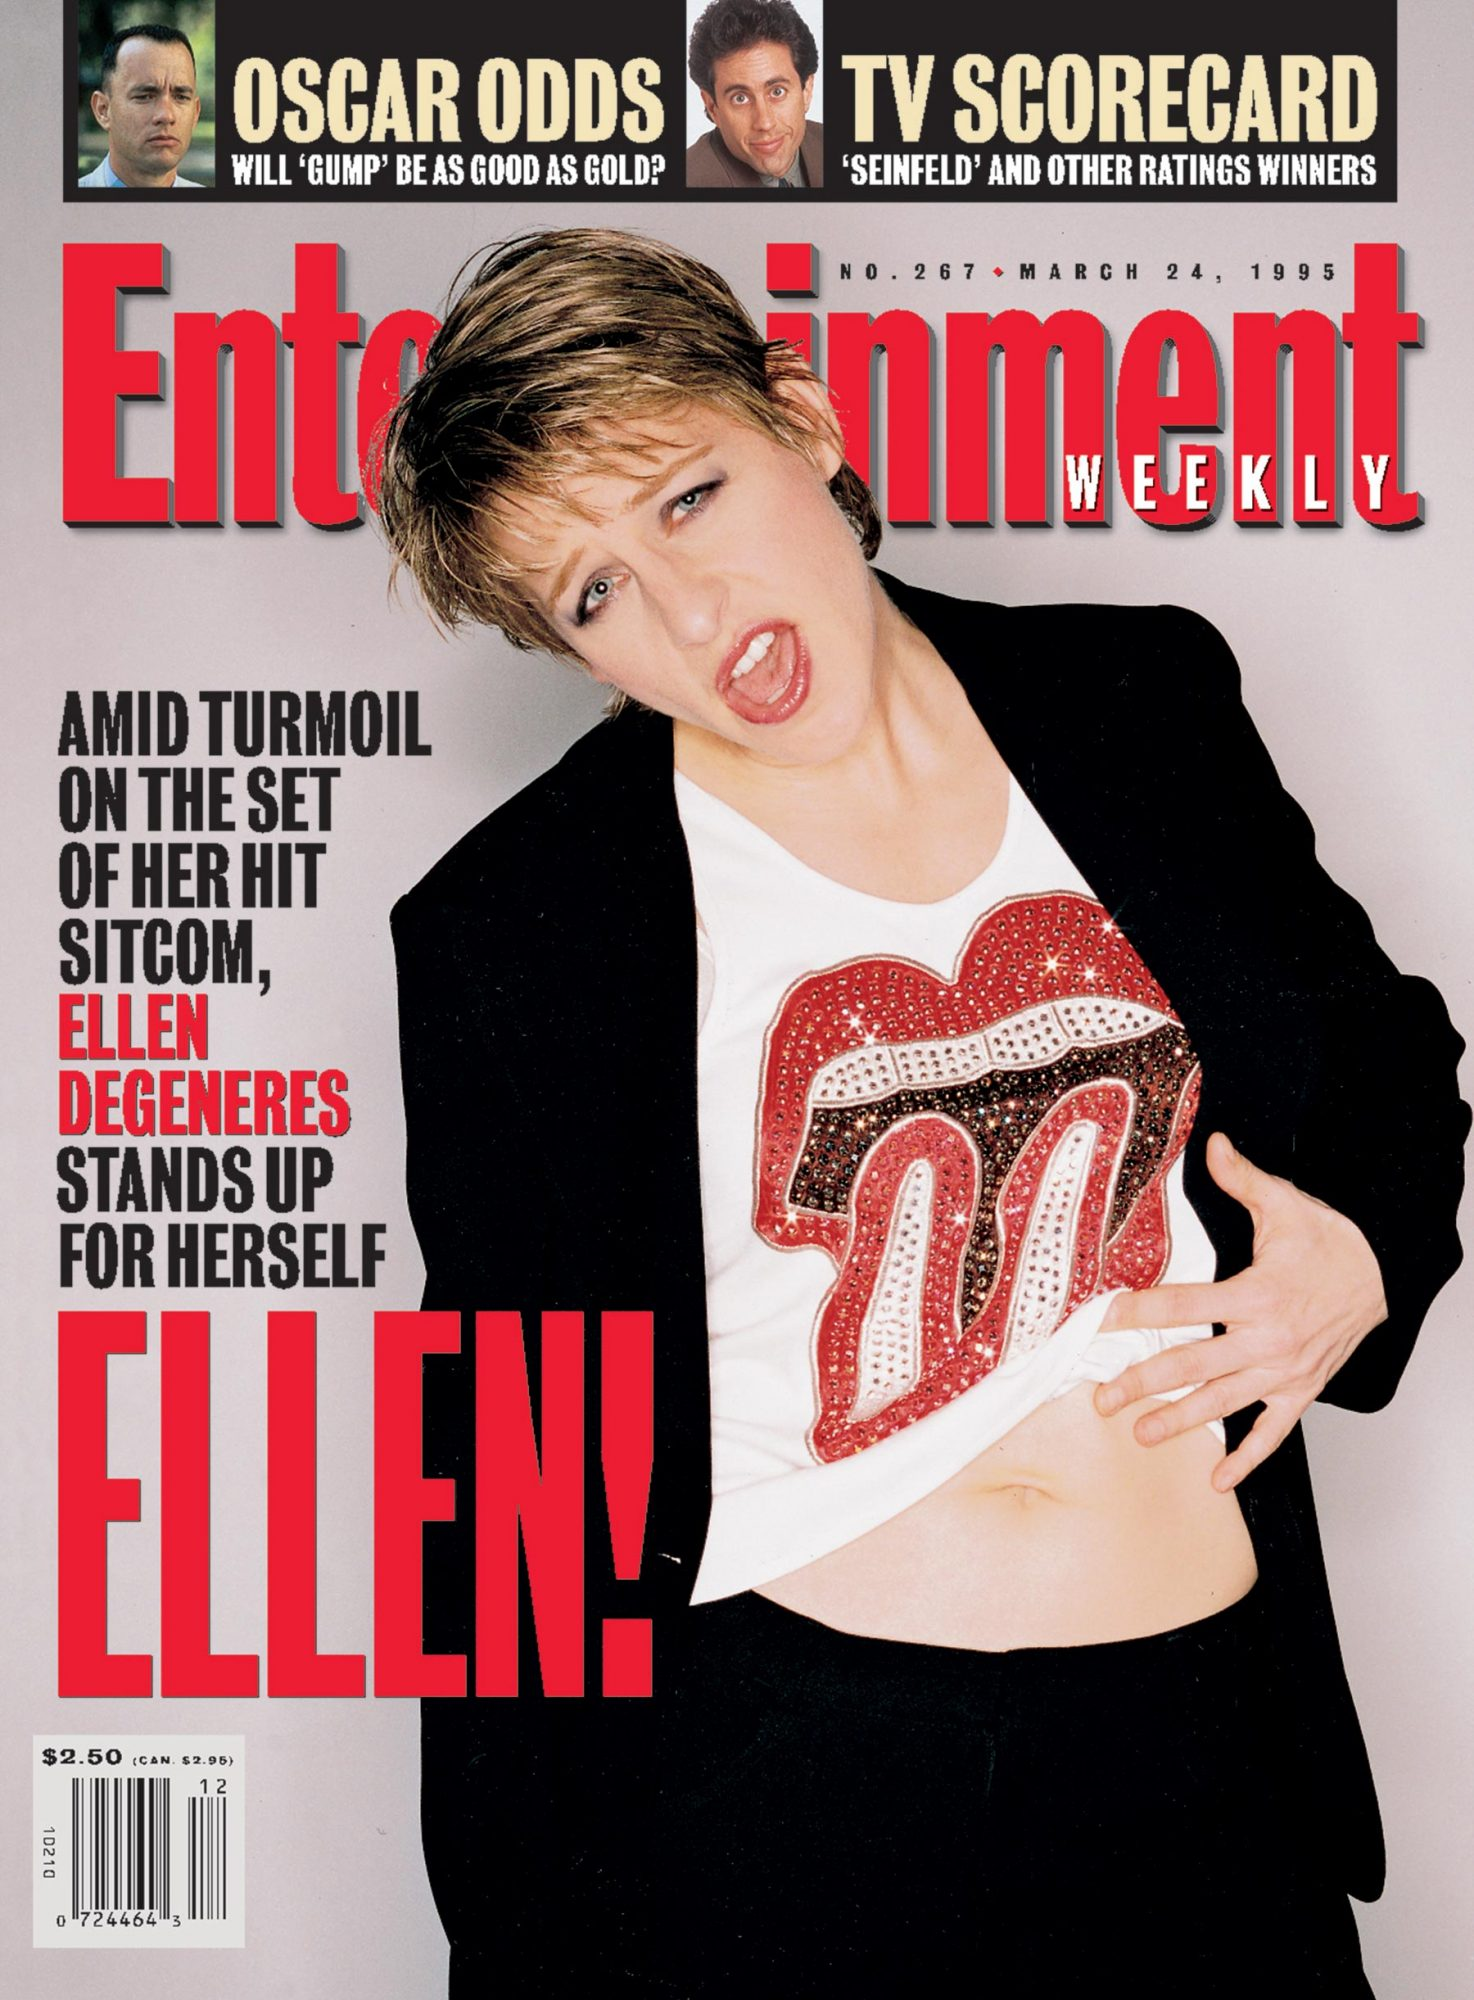 Entertainment WeeklyEllen DegeneresMarch 24, 1995# 267